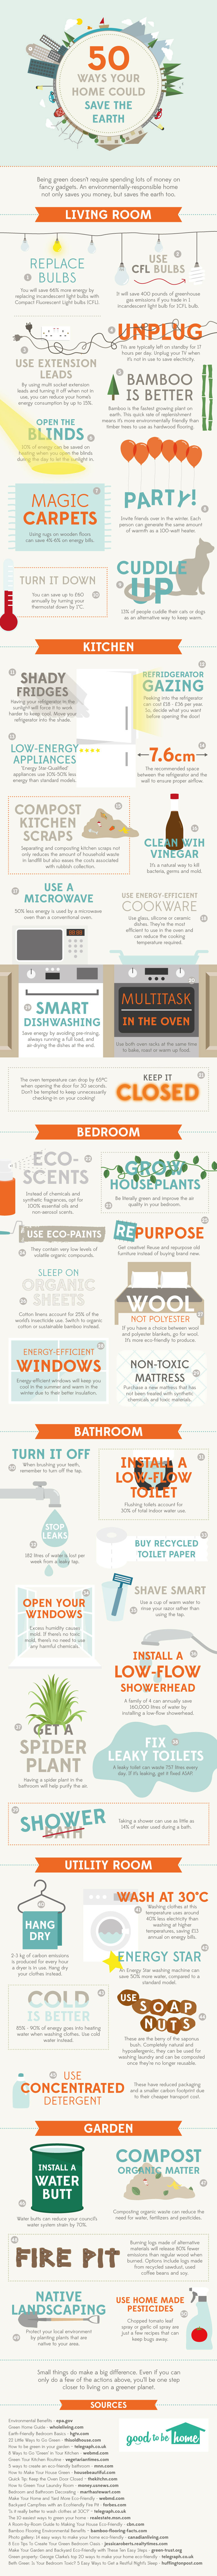 50-ways-your-home-could-save-the-earth